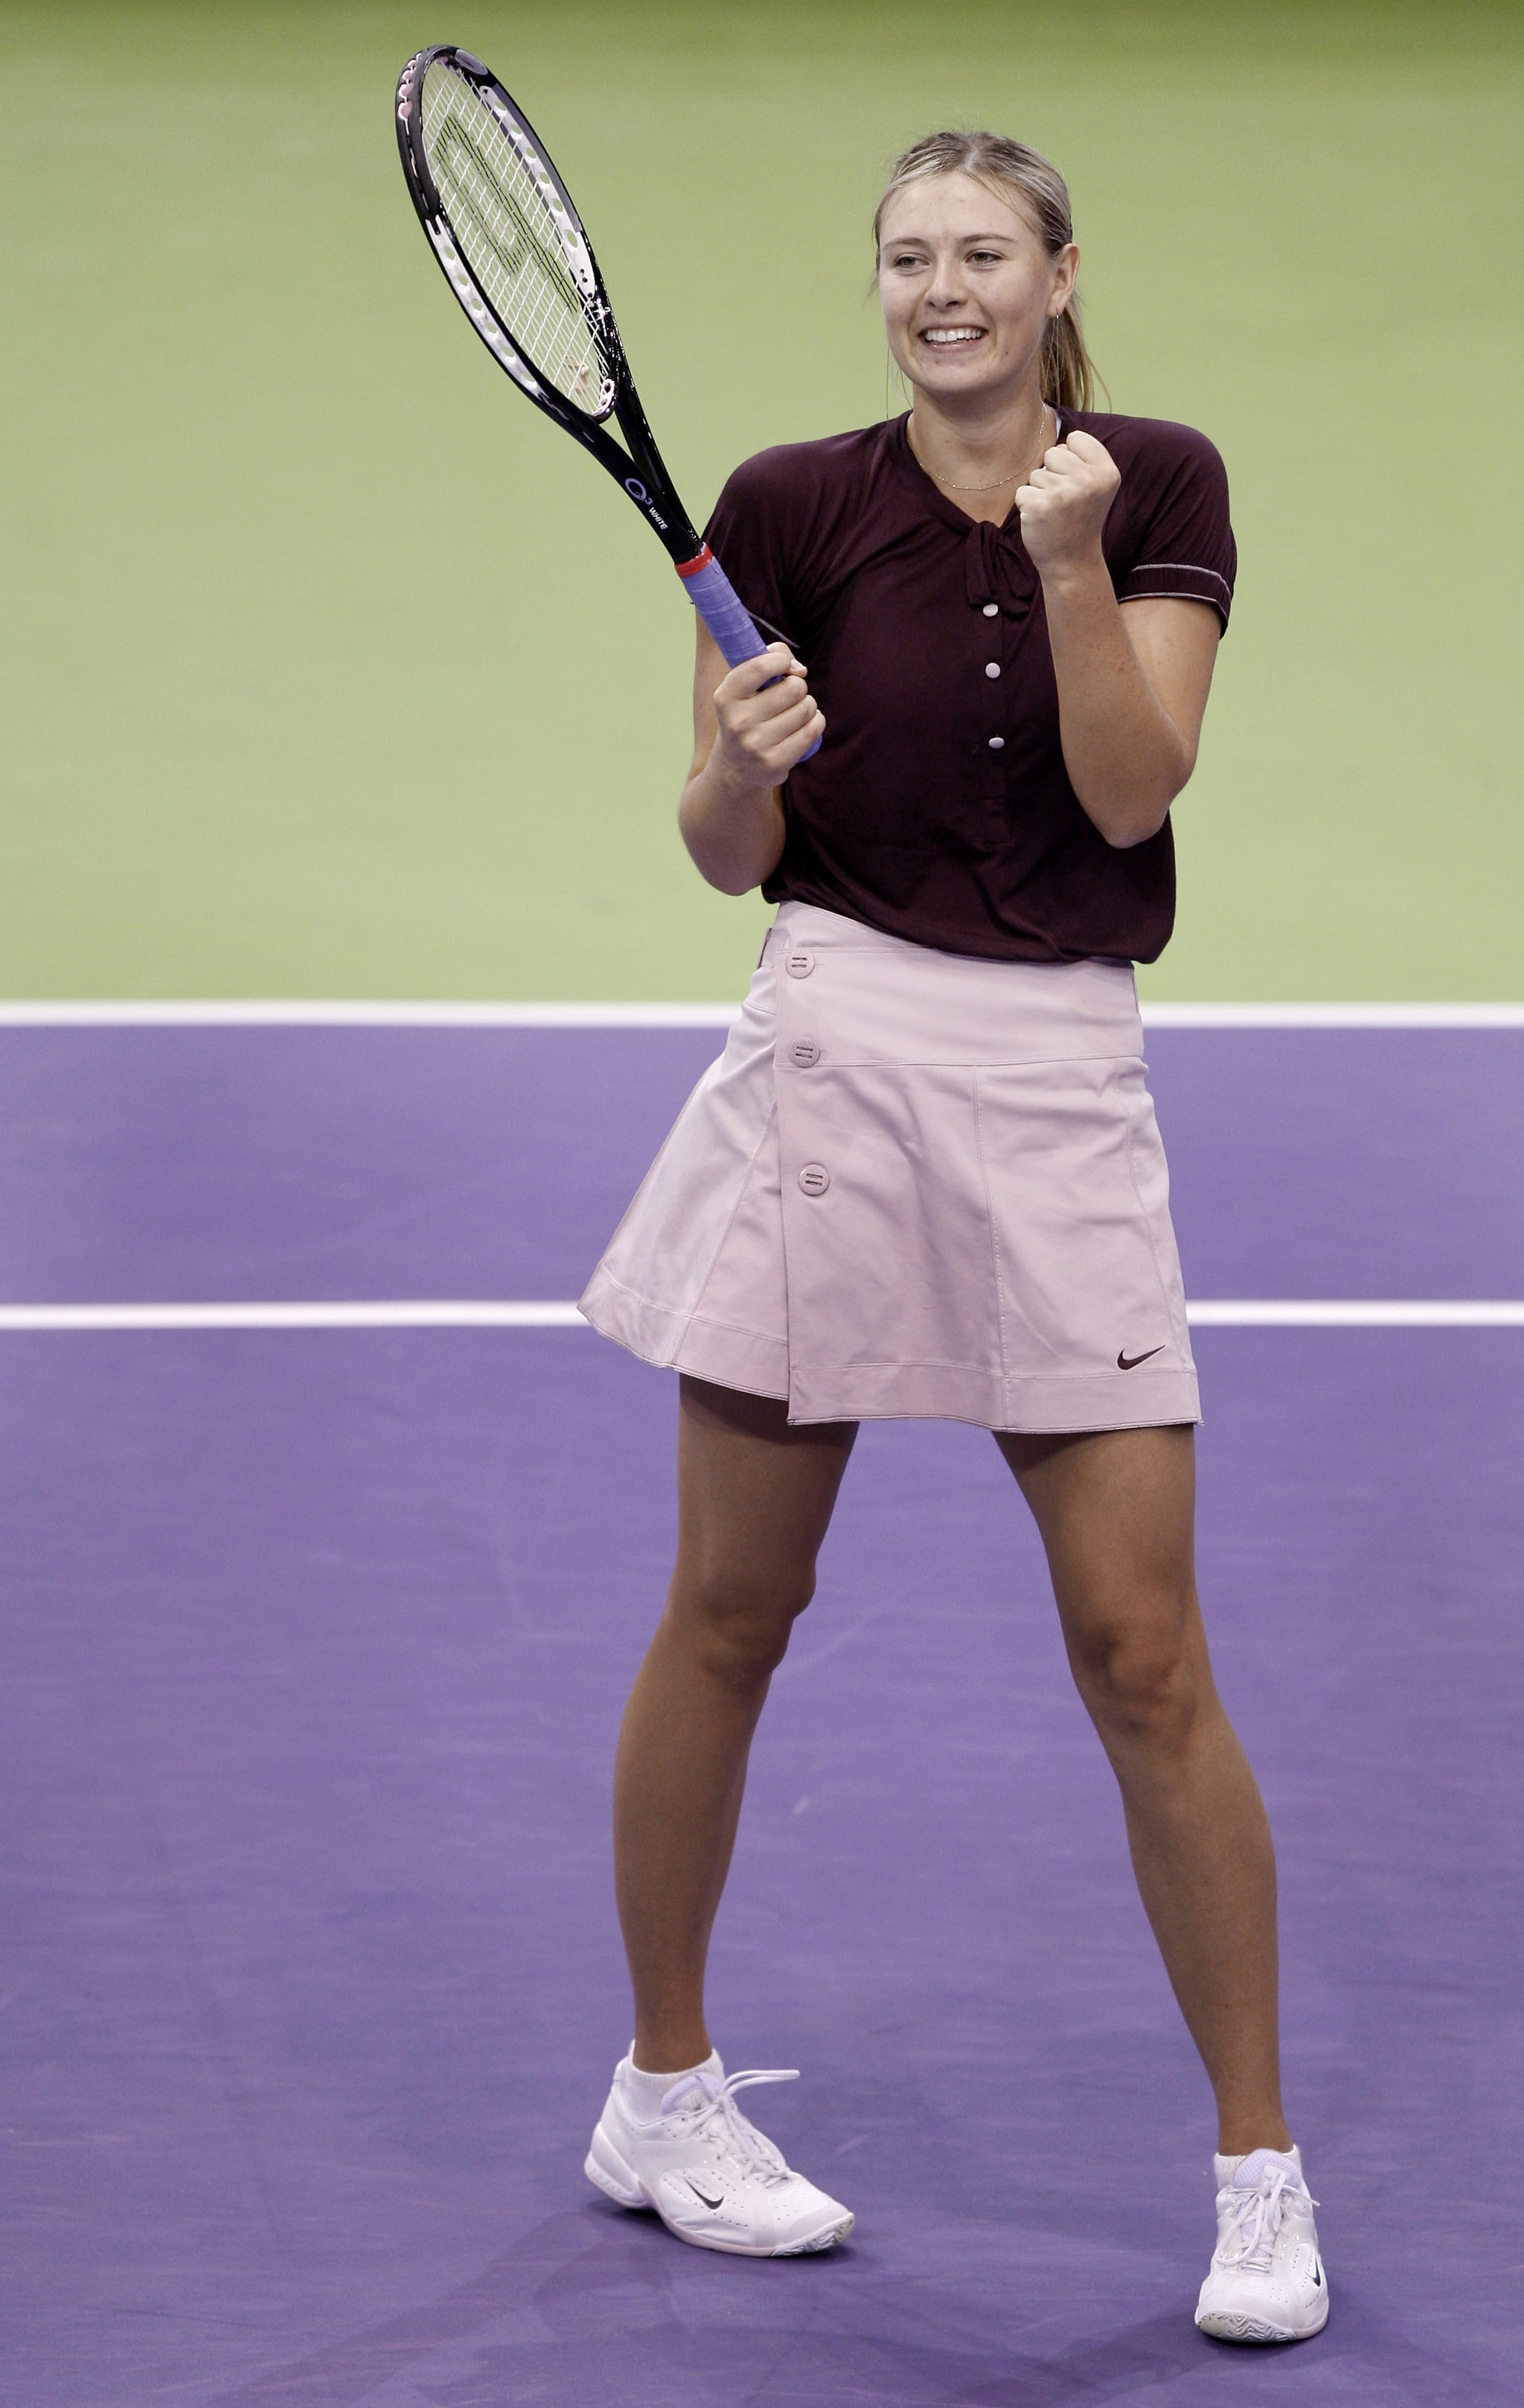 Tennis icon Maria Sharapova did it again with her school uniform inspired tennis outfit for the 2007 WTA Tour Championships.